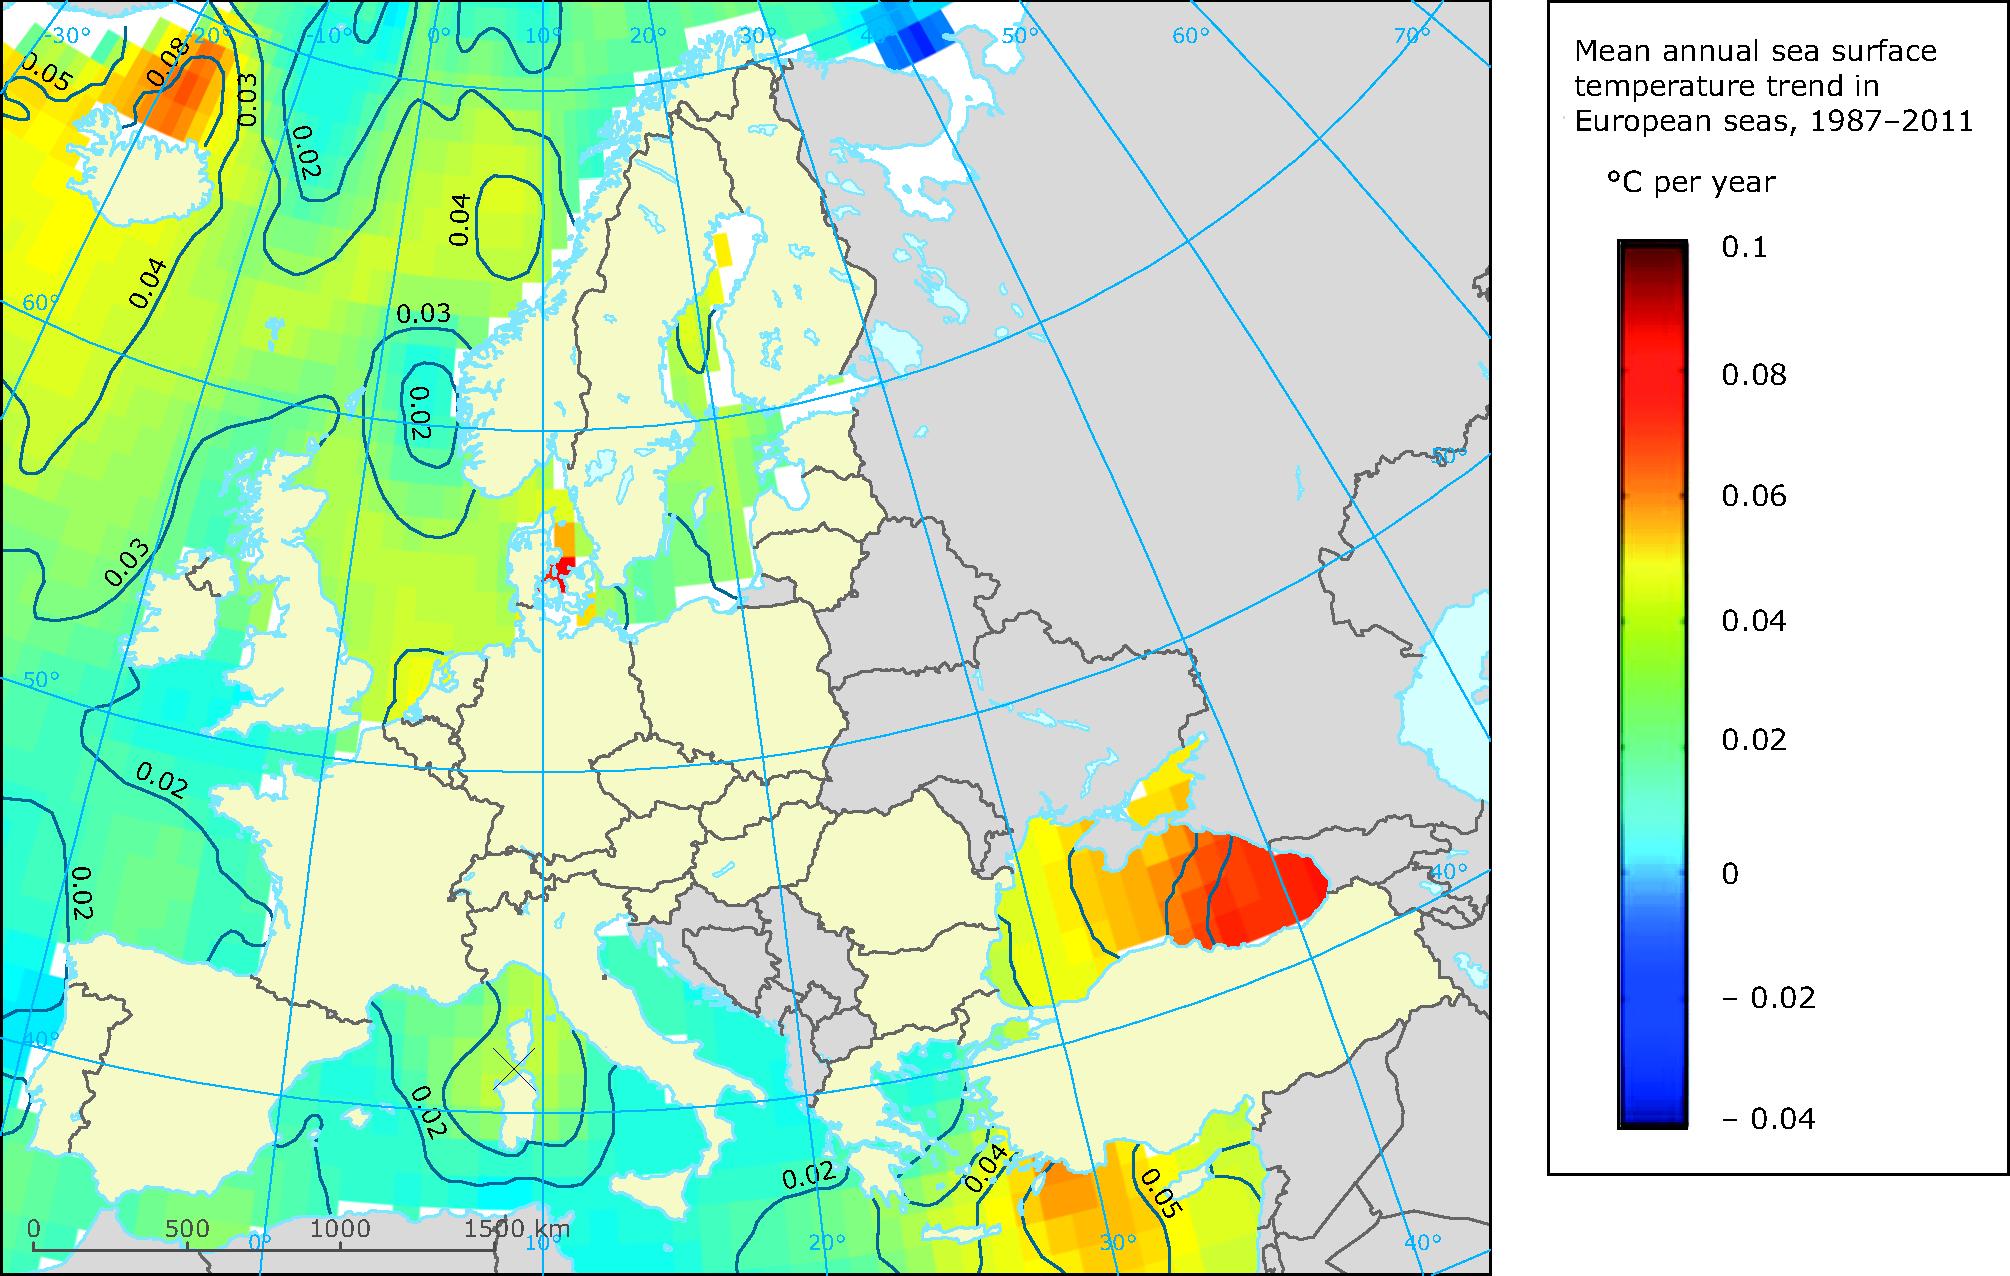 Mean annual sea surface temperature trend in European seas